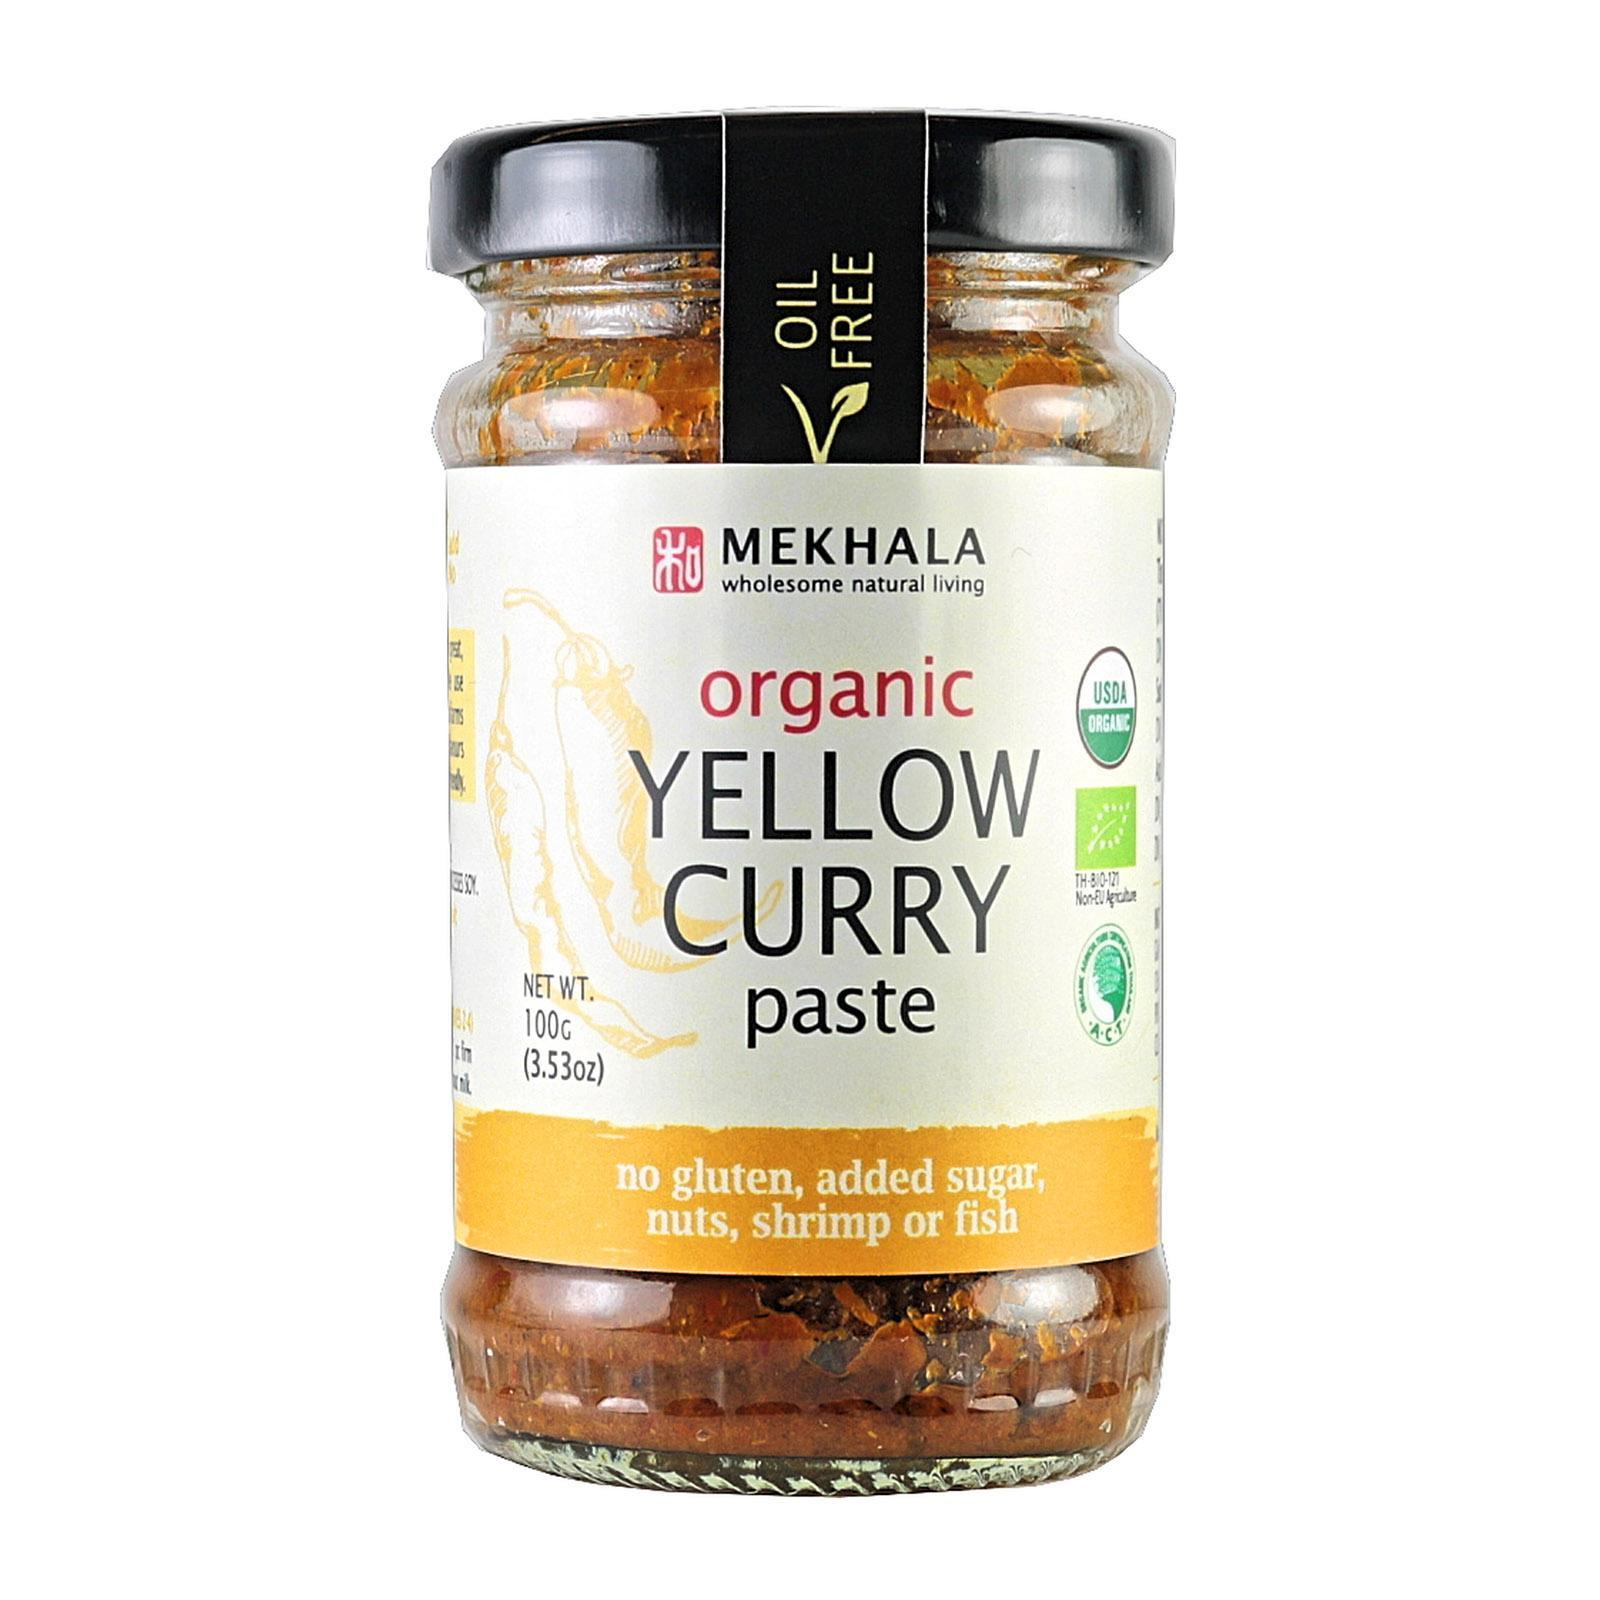 Mekhala Organic (all-Natural) Thai Yellow Curry Paste By Redmart.